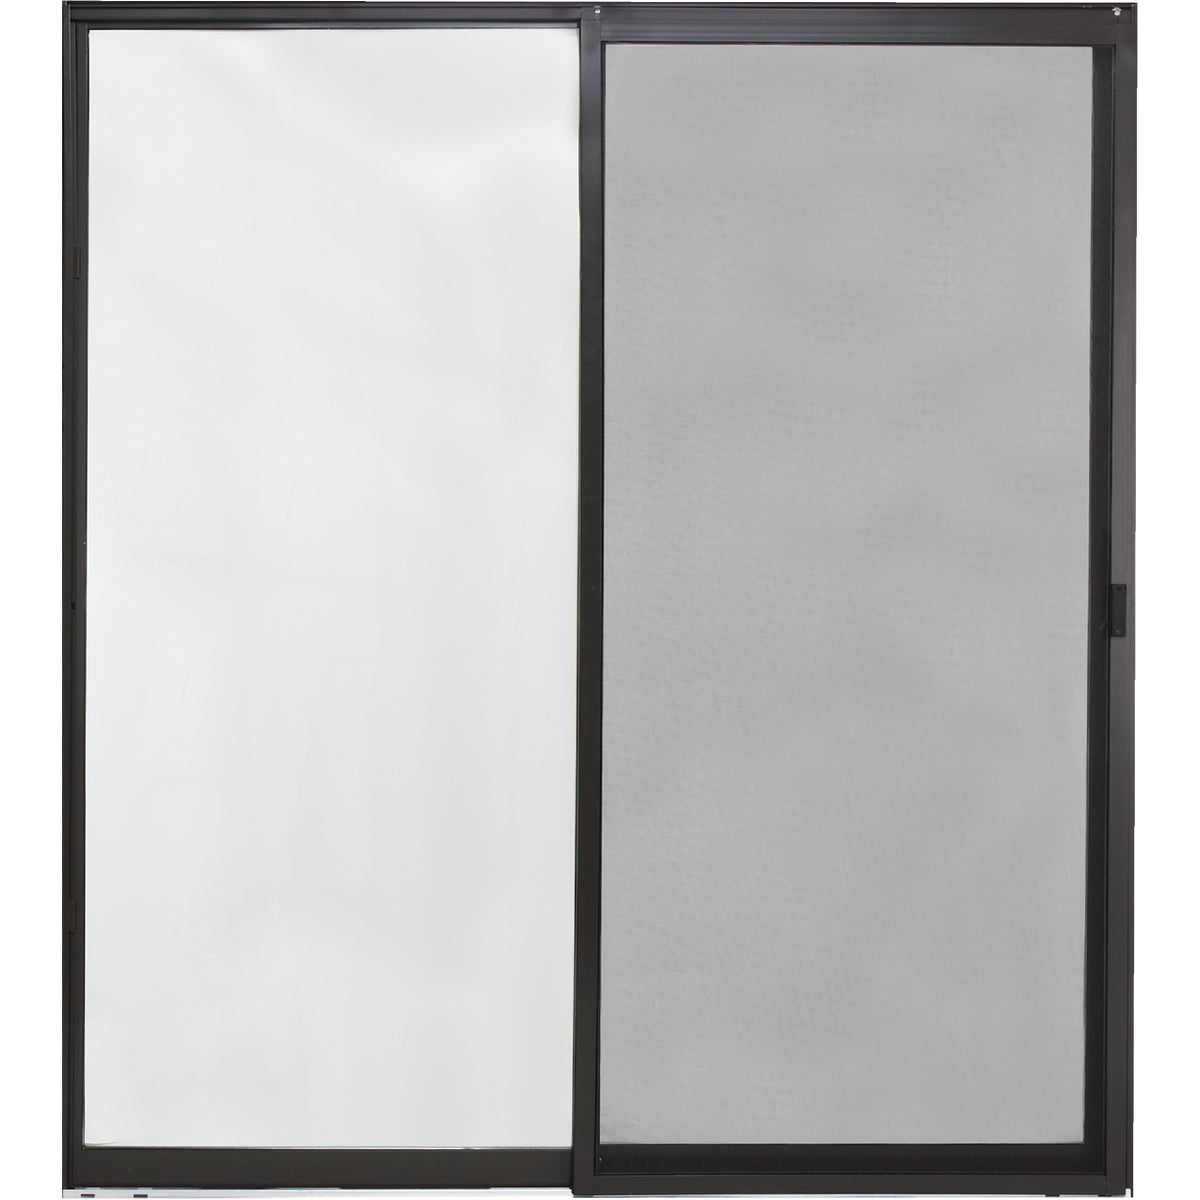 6068 BRZ PATIO DOOR - F85396 by Croft Llc